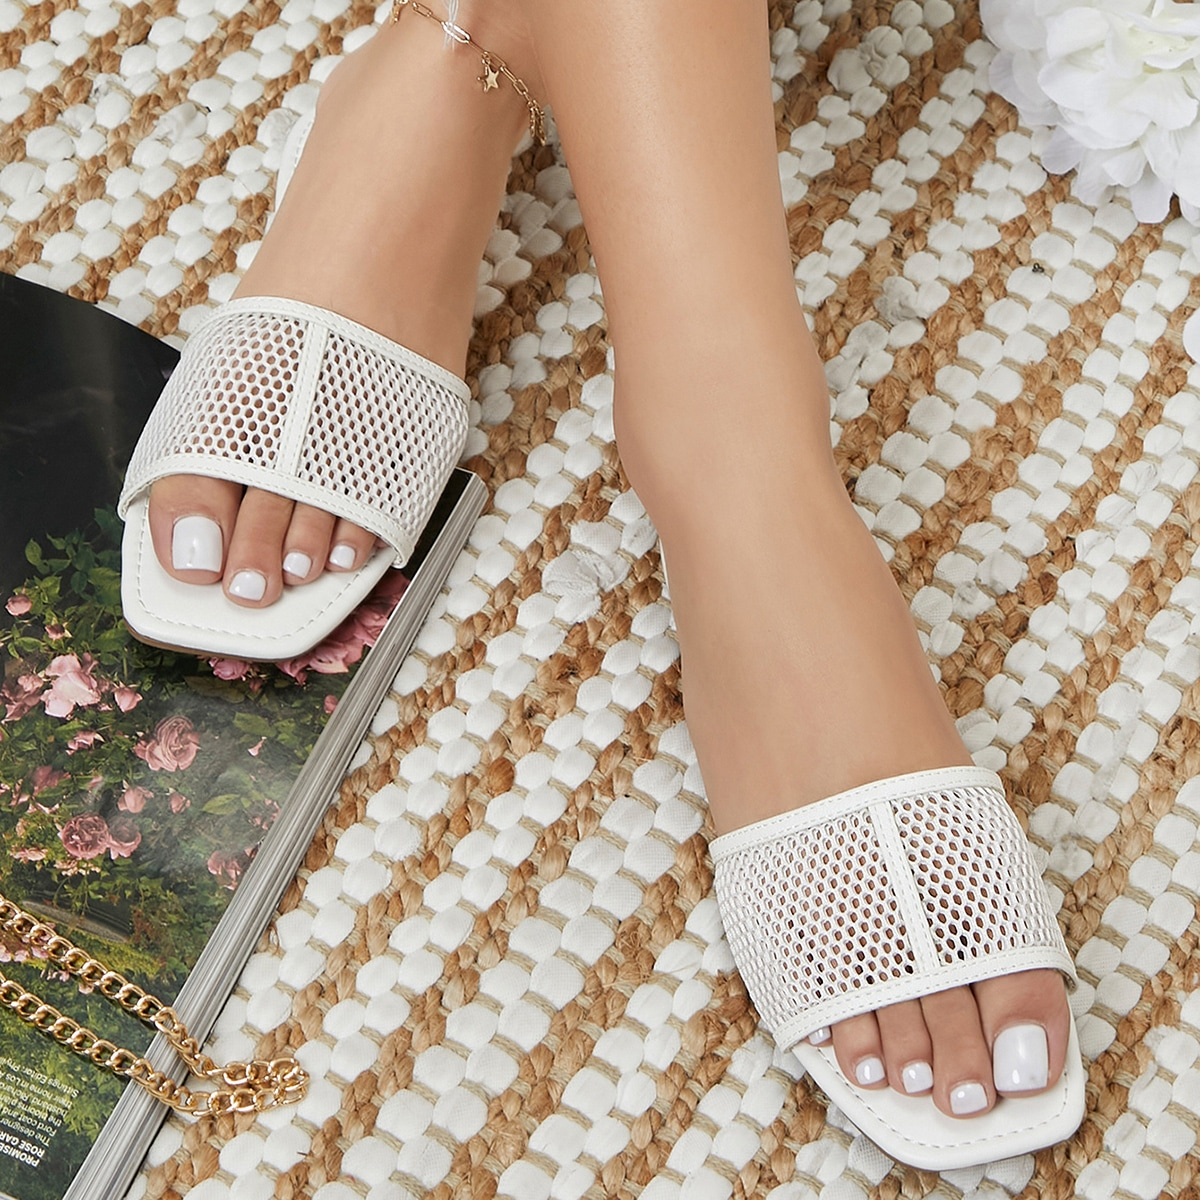 Vegan Leather Mesh Vamp Slip-On Sandals, SHEIN  - buy with discount